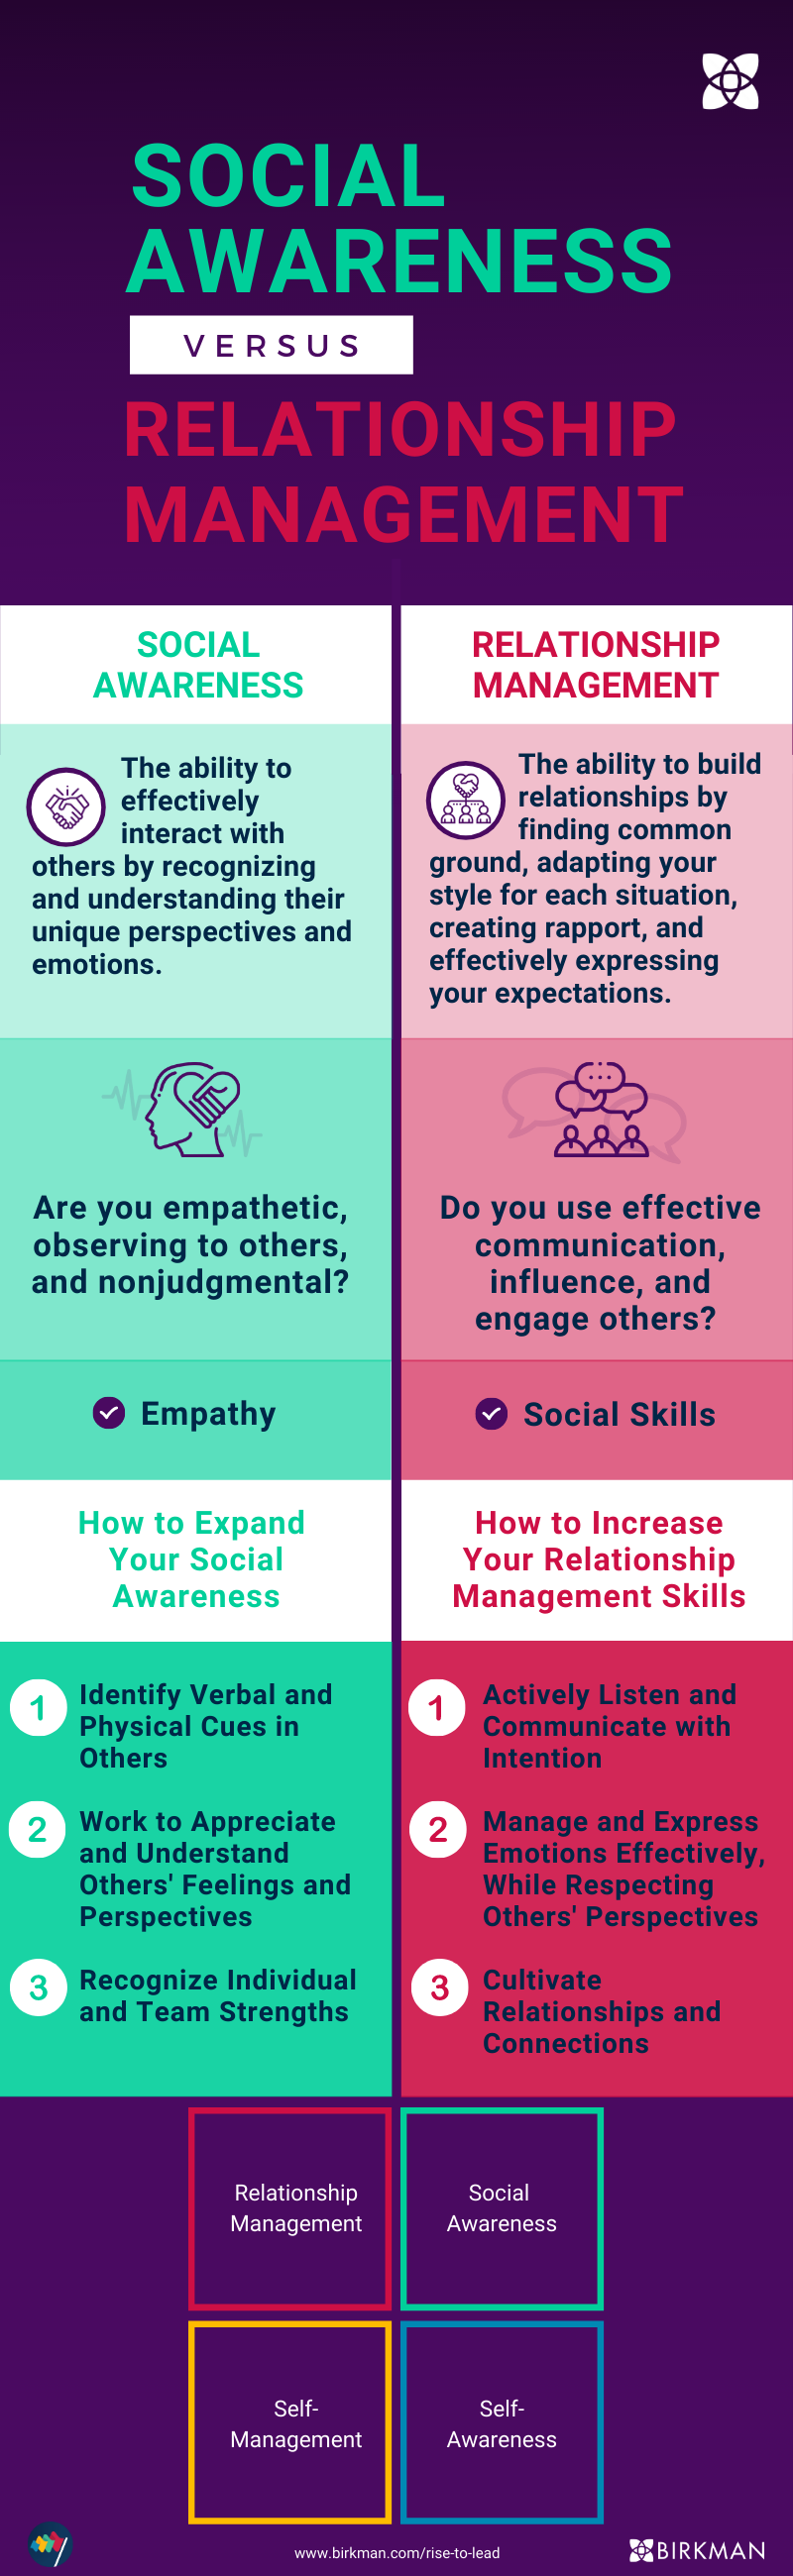 Copy of SocialAwareness Relationship Management Infographic